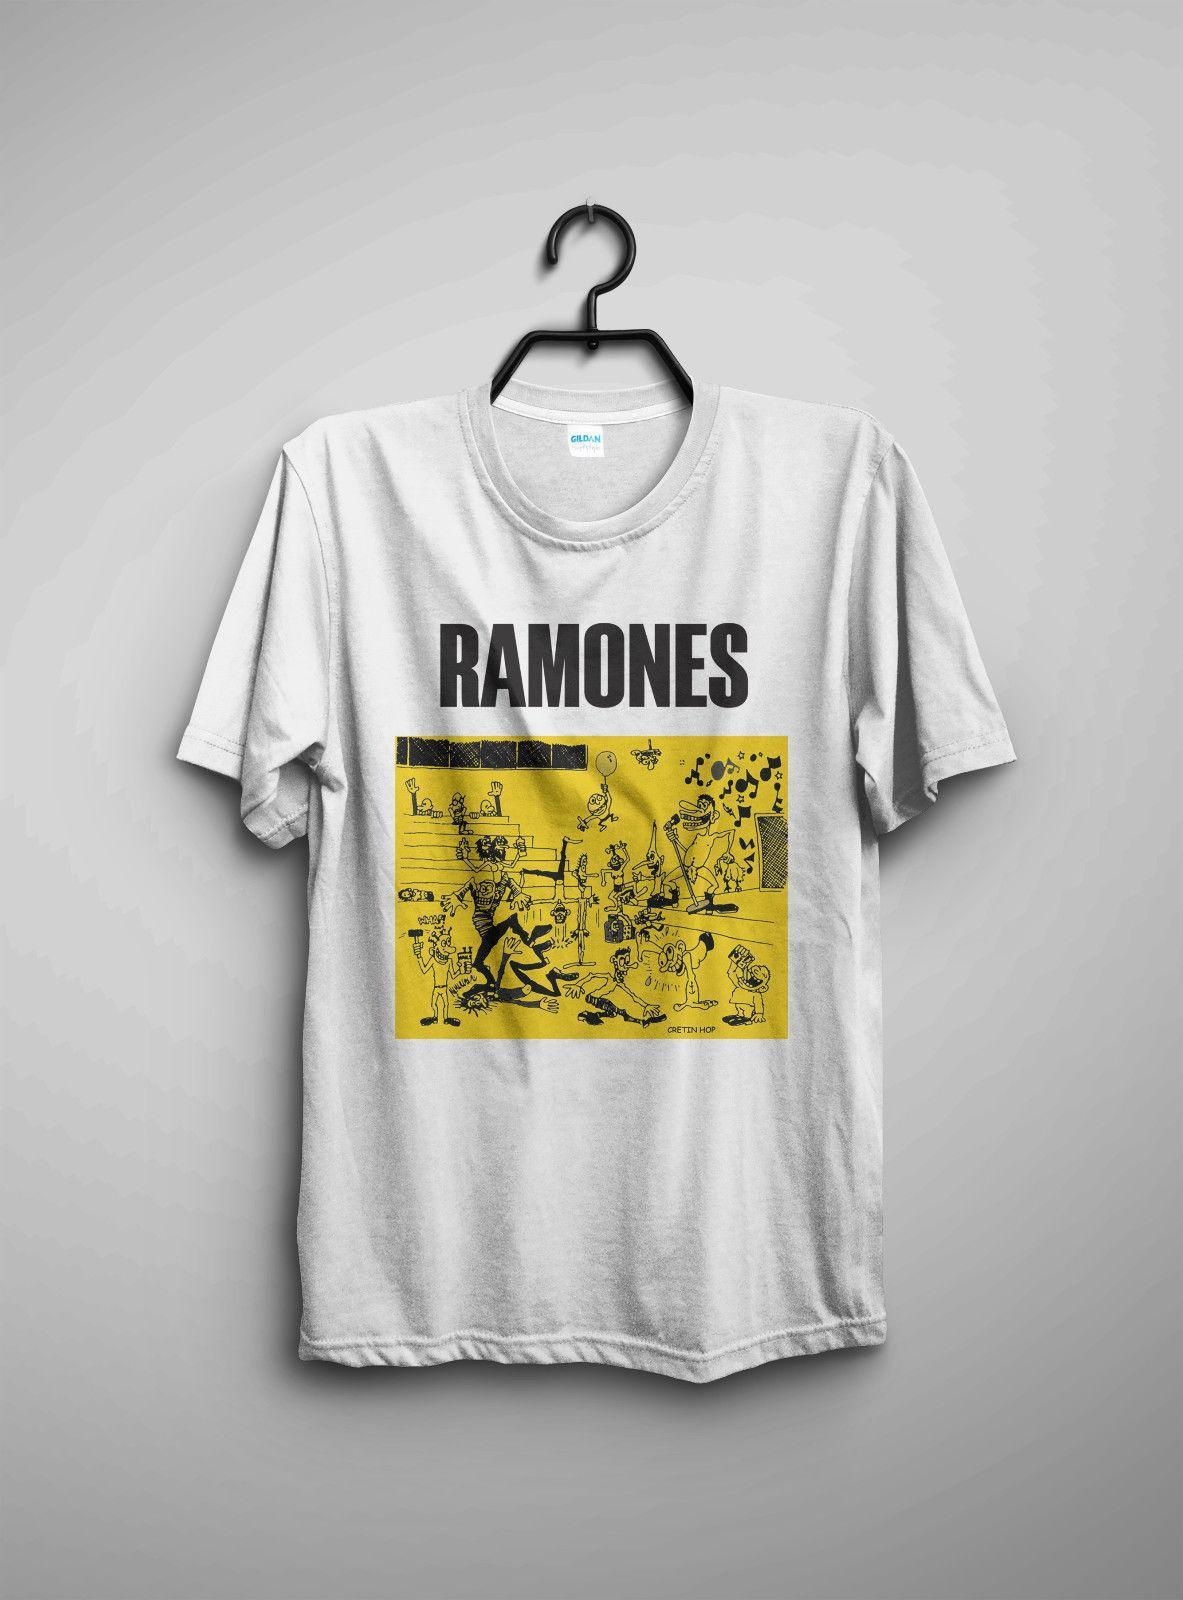 Ramones Vintage Official Half Way To Sanity Tour Cretin T Shirt 1987